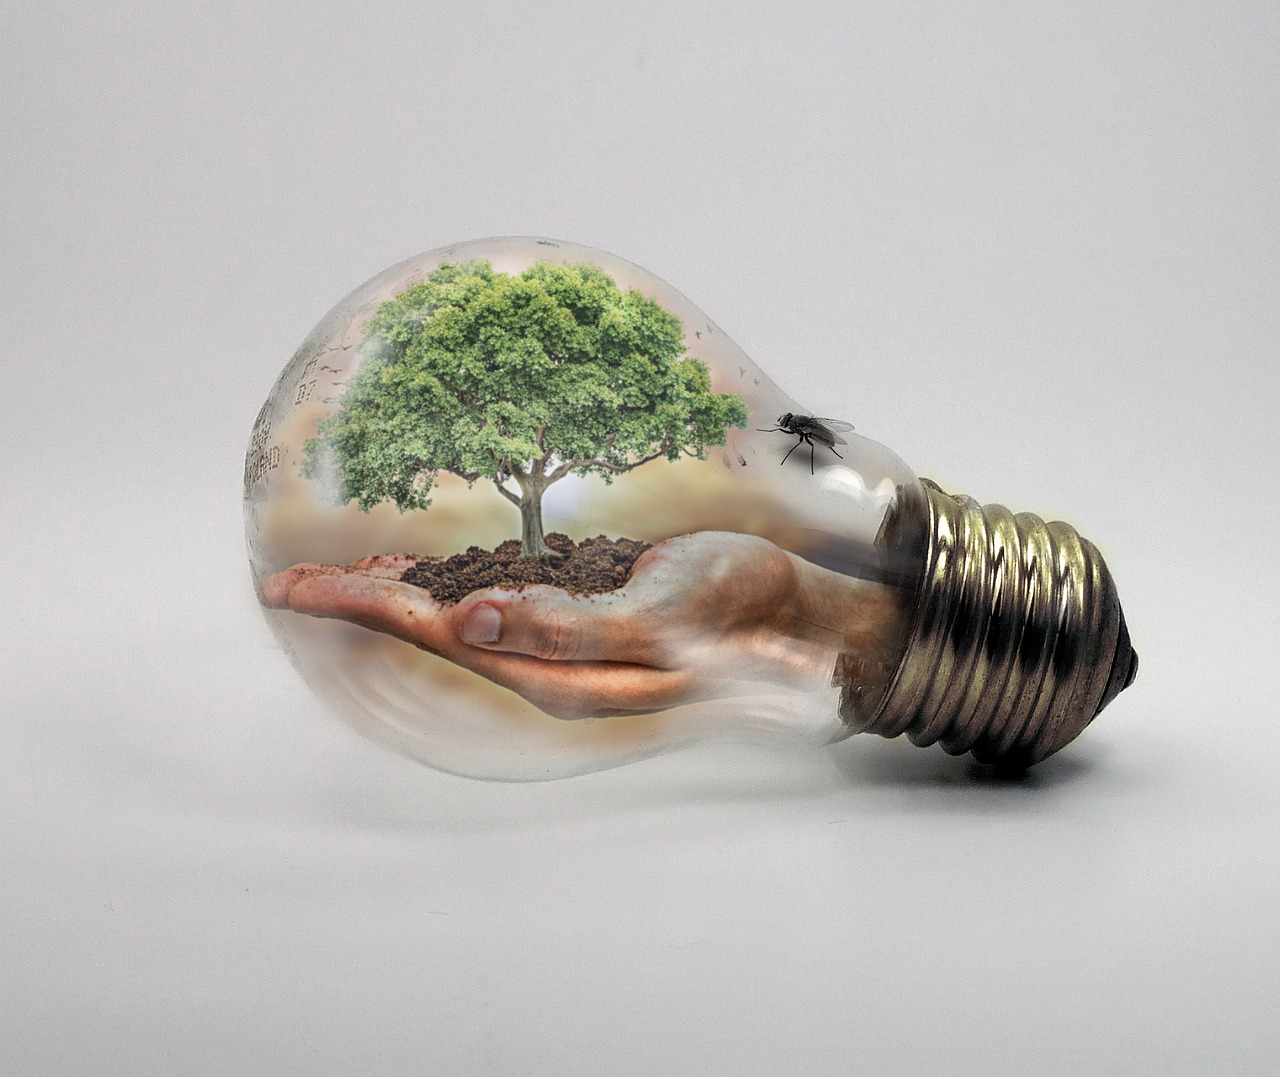 6 innovative technologies that can fight the climate crisis